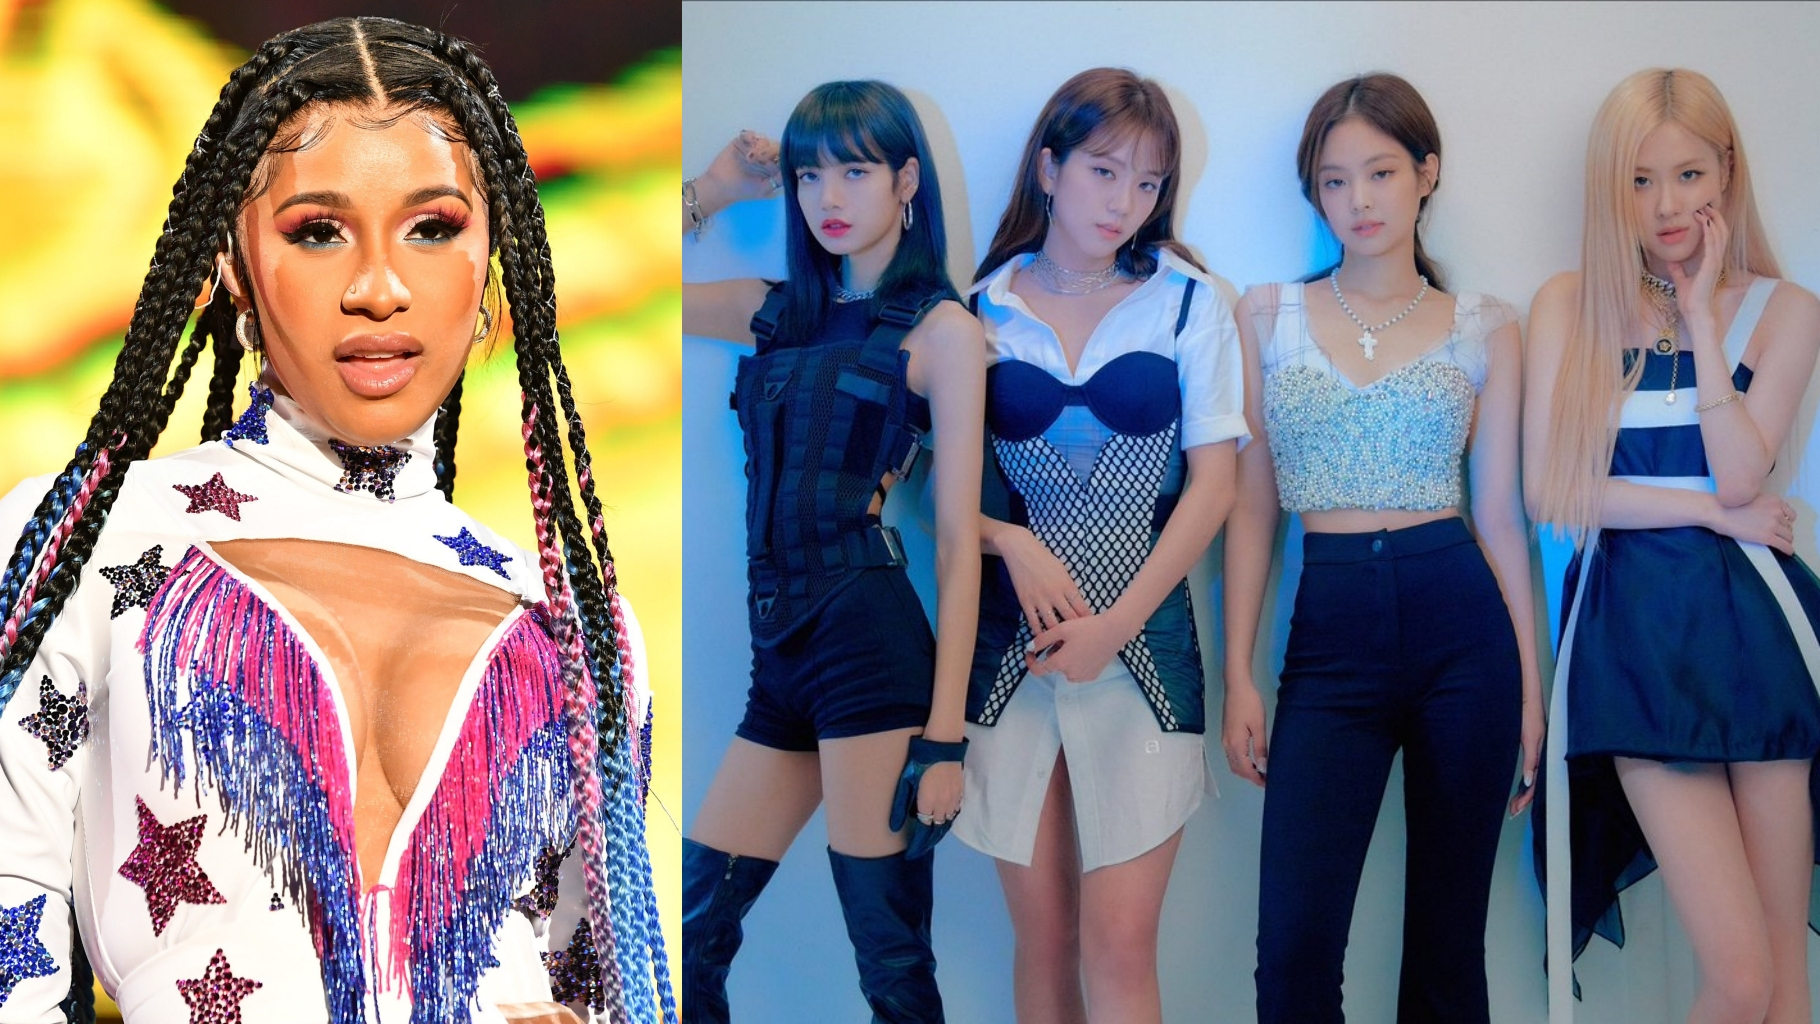 Cardi B Opens Up About Her Collaboration Songs with BLACKPINK